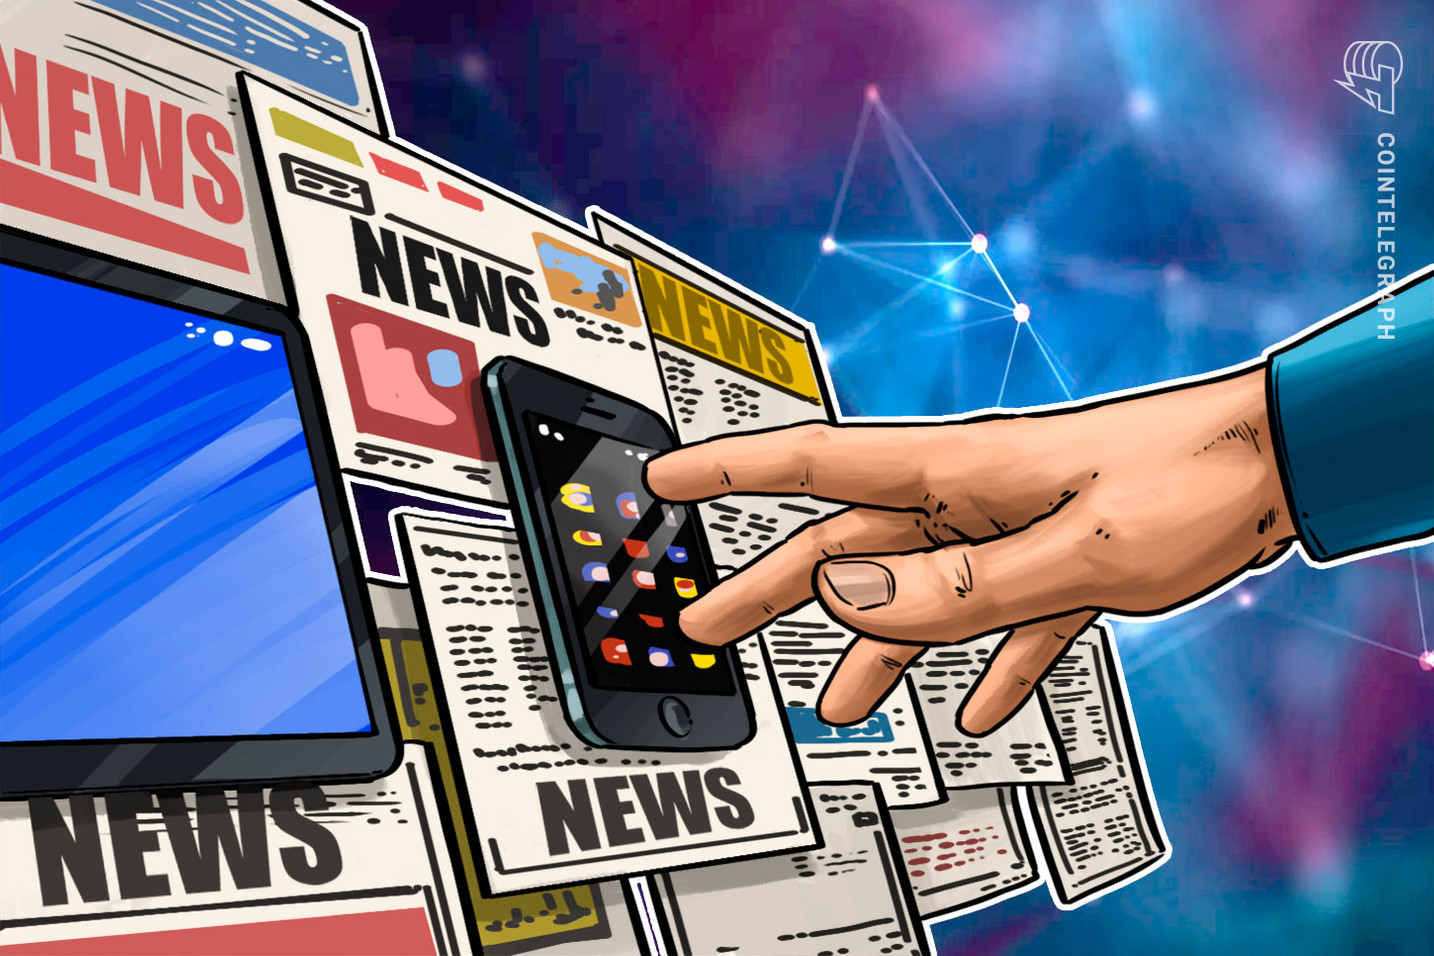 Italian Firm Claims Its Non-Fungible Tokens Can Tackle Fake News